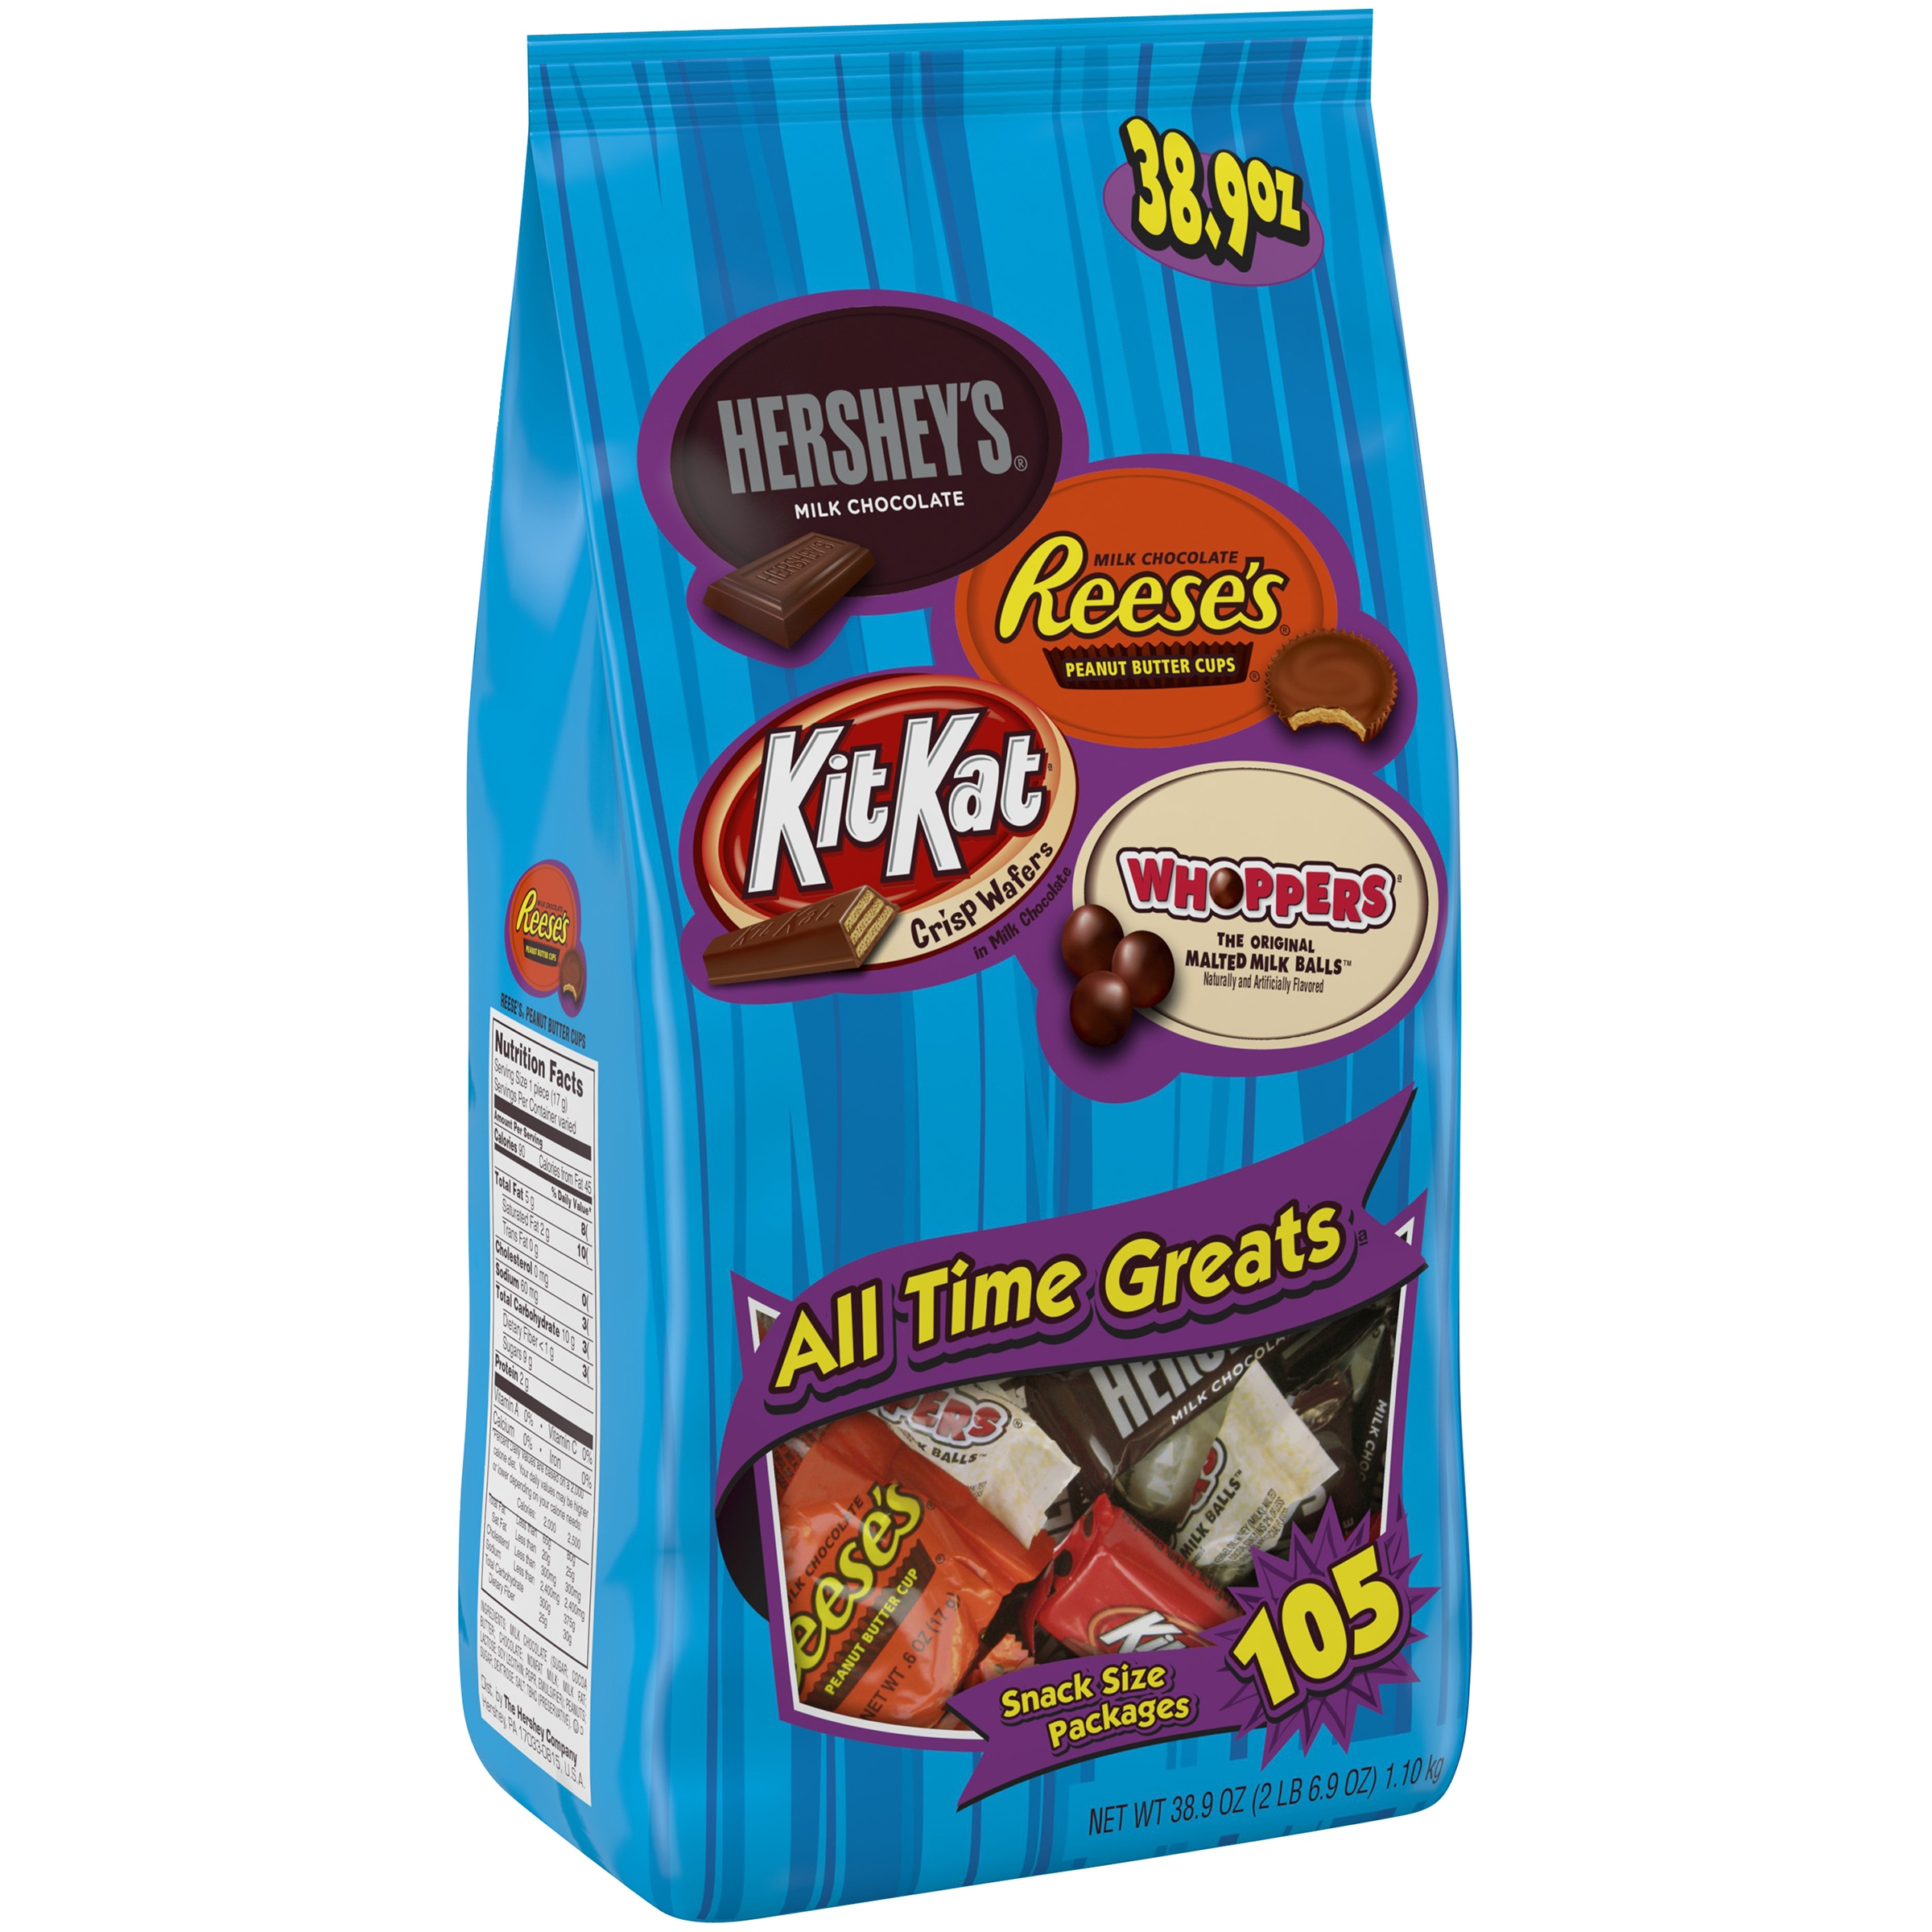 Hershey's All Time Greats Hershey's Reese's Kit Kat Whoppers Candy, 105 ct, 38.9 oz Bag by Generic